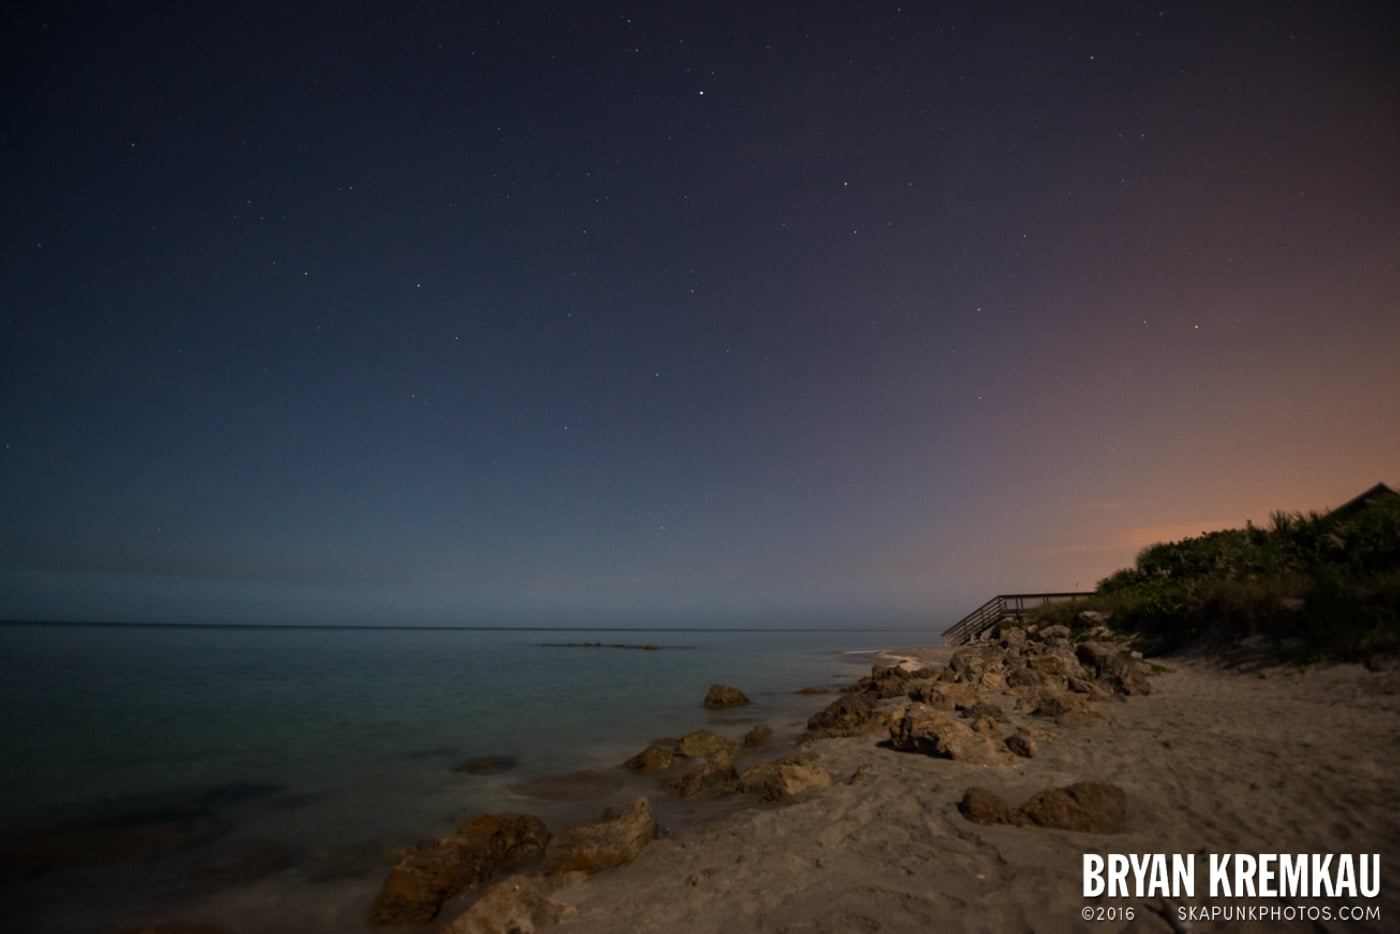 Sunsets, Astrophotography & Birds @ Venice, Florida - 10.25.14 - 11.5.14 (31)